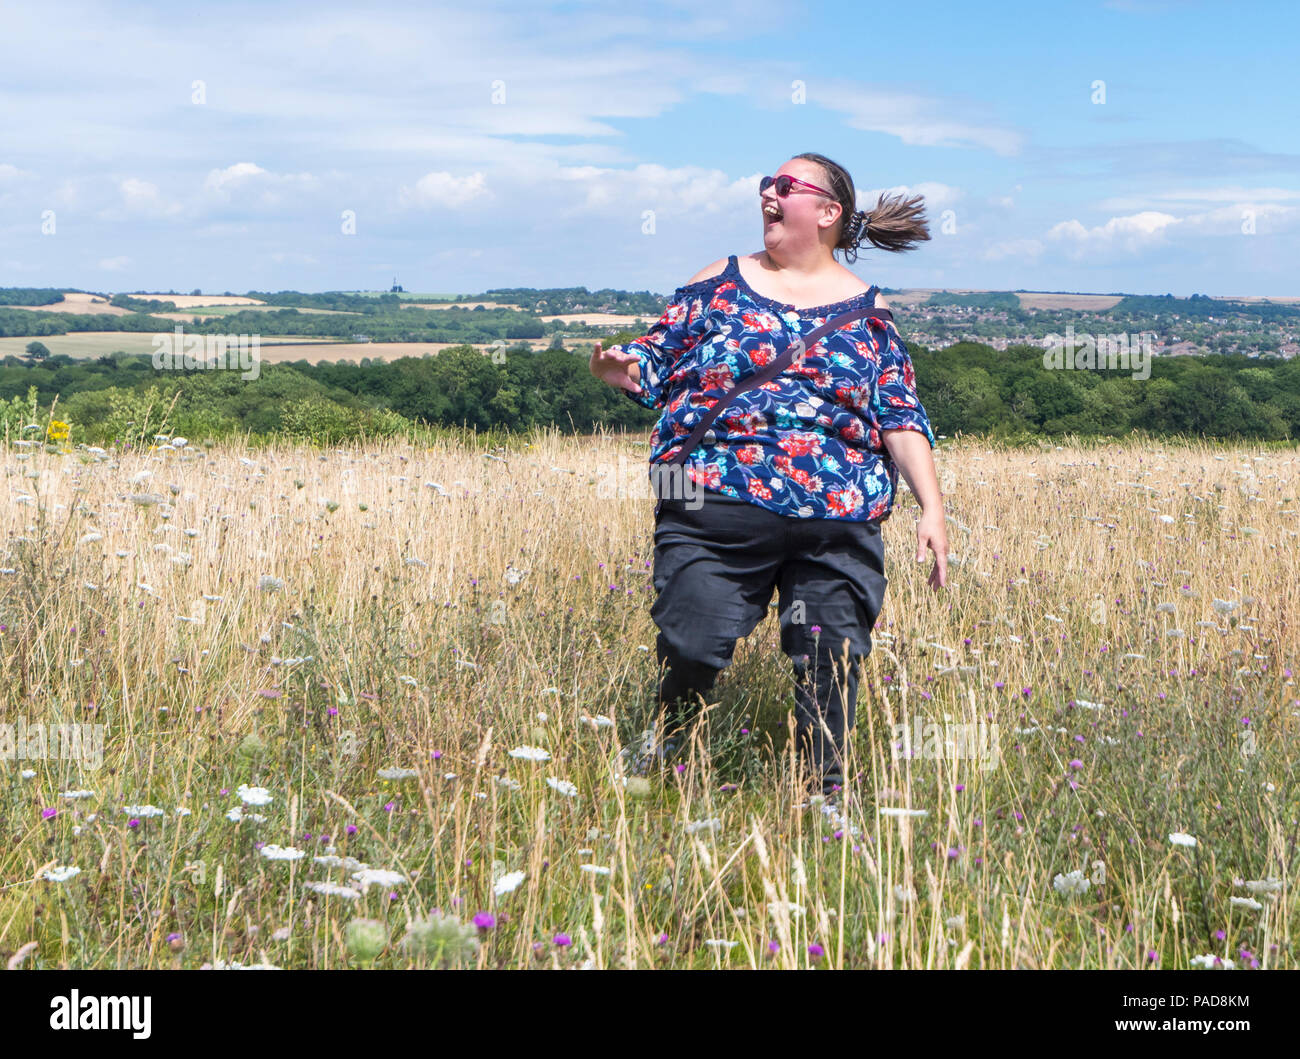 Jeune femme saute et tourne autour d'une prairie de la campagne britannique par une chaude journée dans la canicule de juillet 2018 à Ascot House Hill, West Sussex, Angleterre, Royaume-Uni. Concept de bonheur. Être heureux concept. Jumping with joy concept. Photo Stock